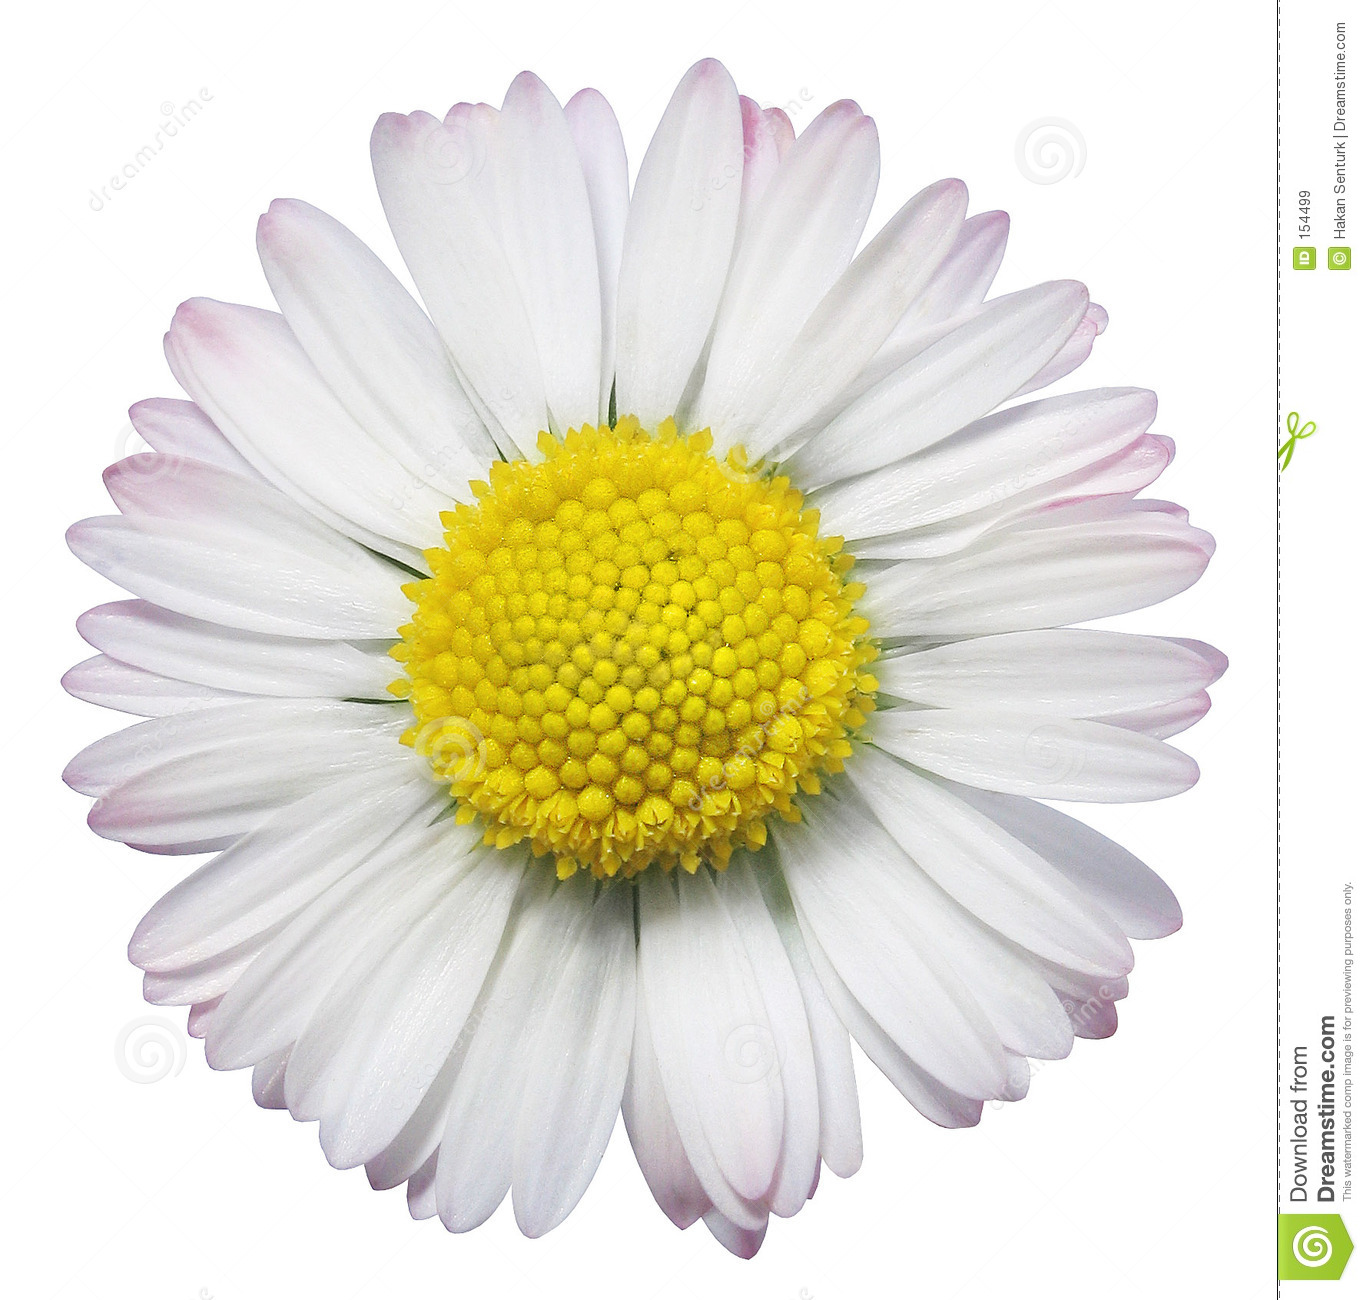 daisy flower royalty free stock photos  image, Natural flower